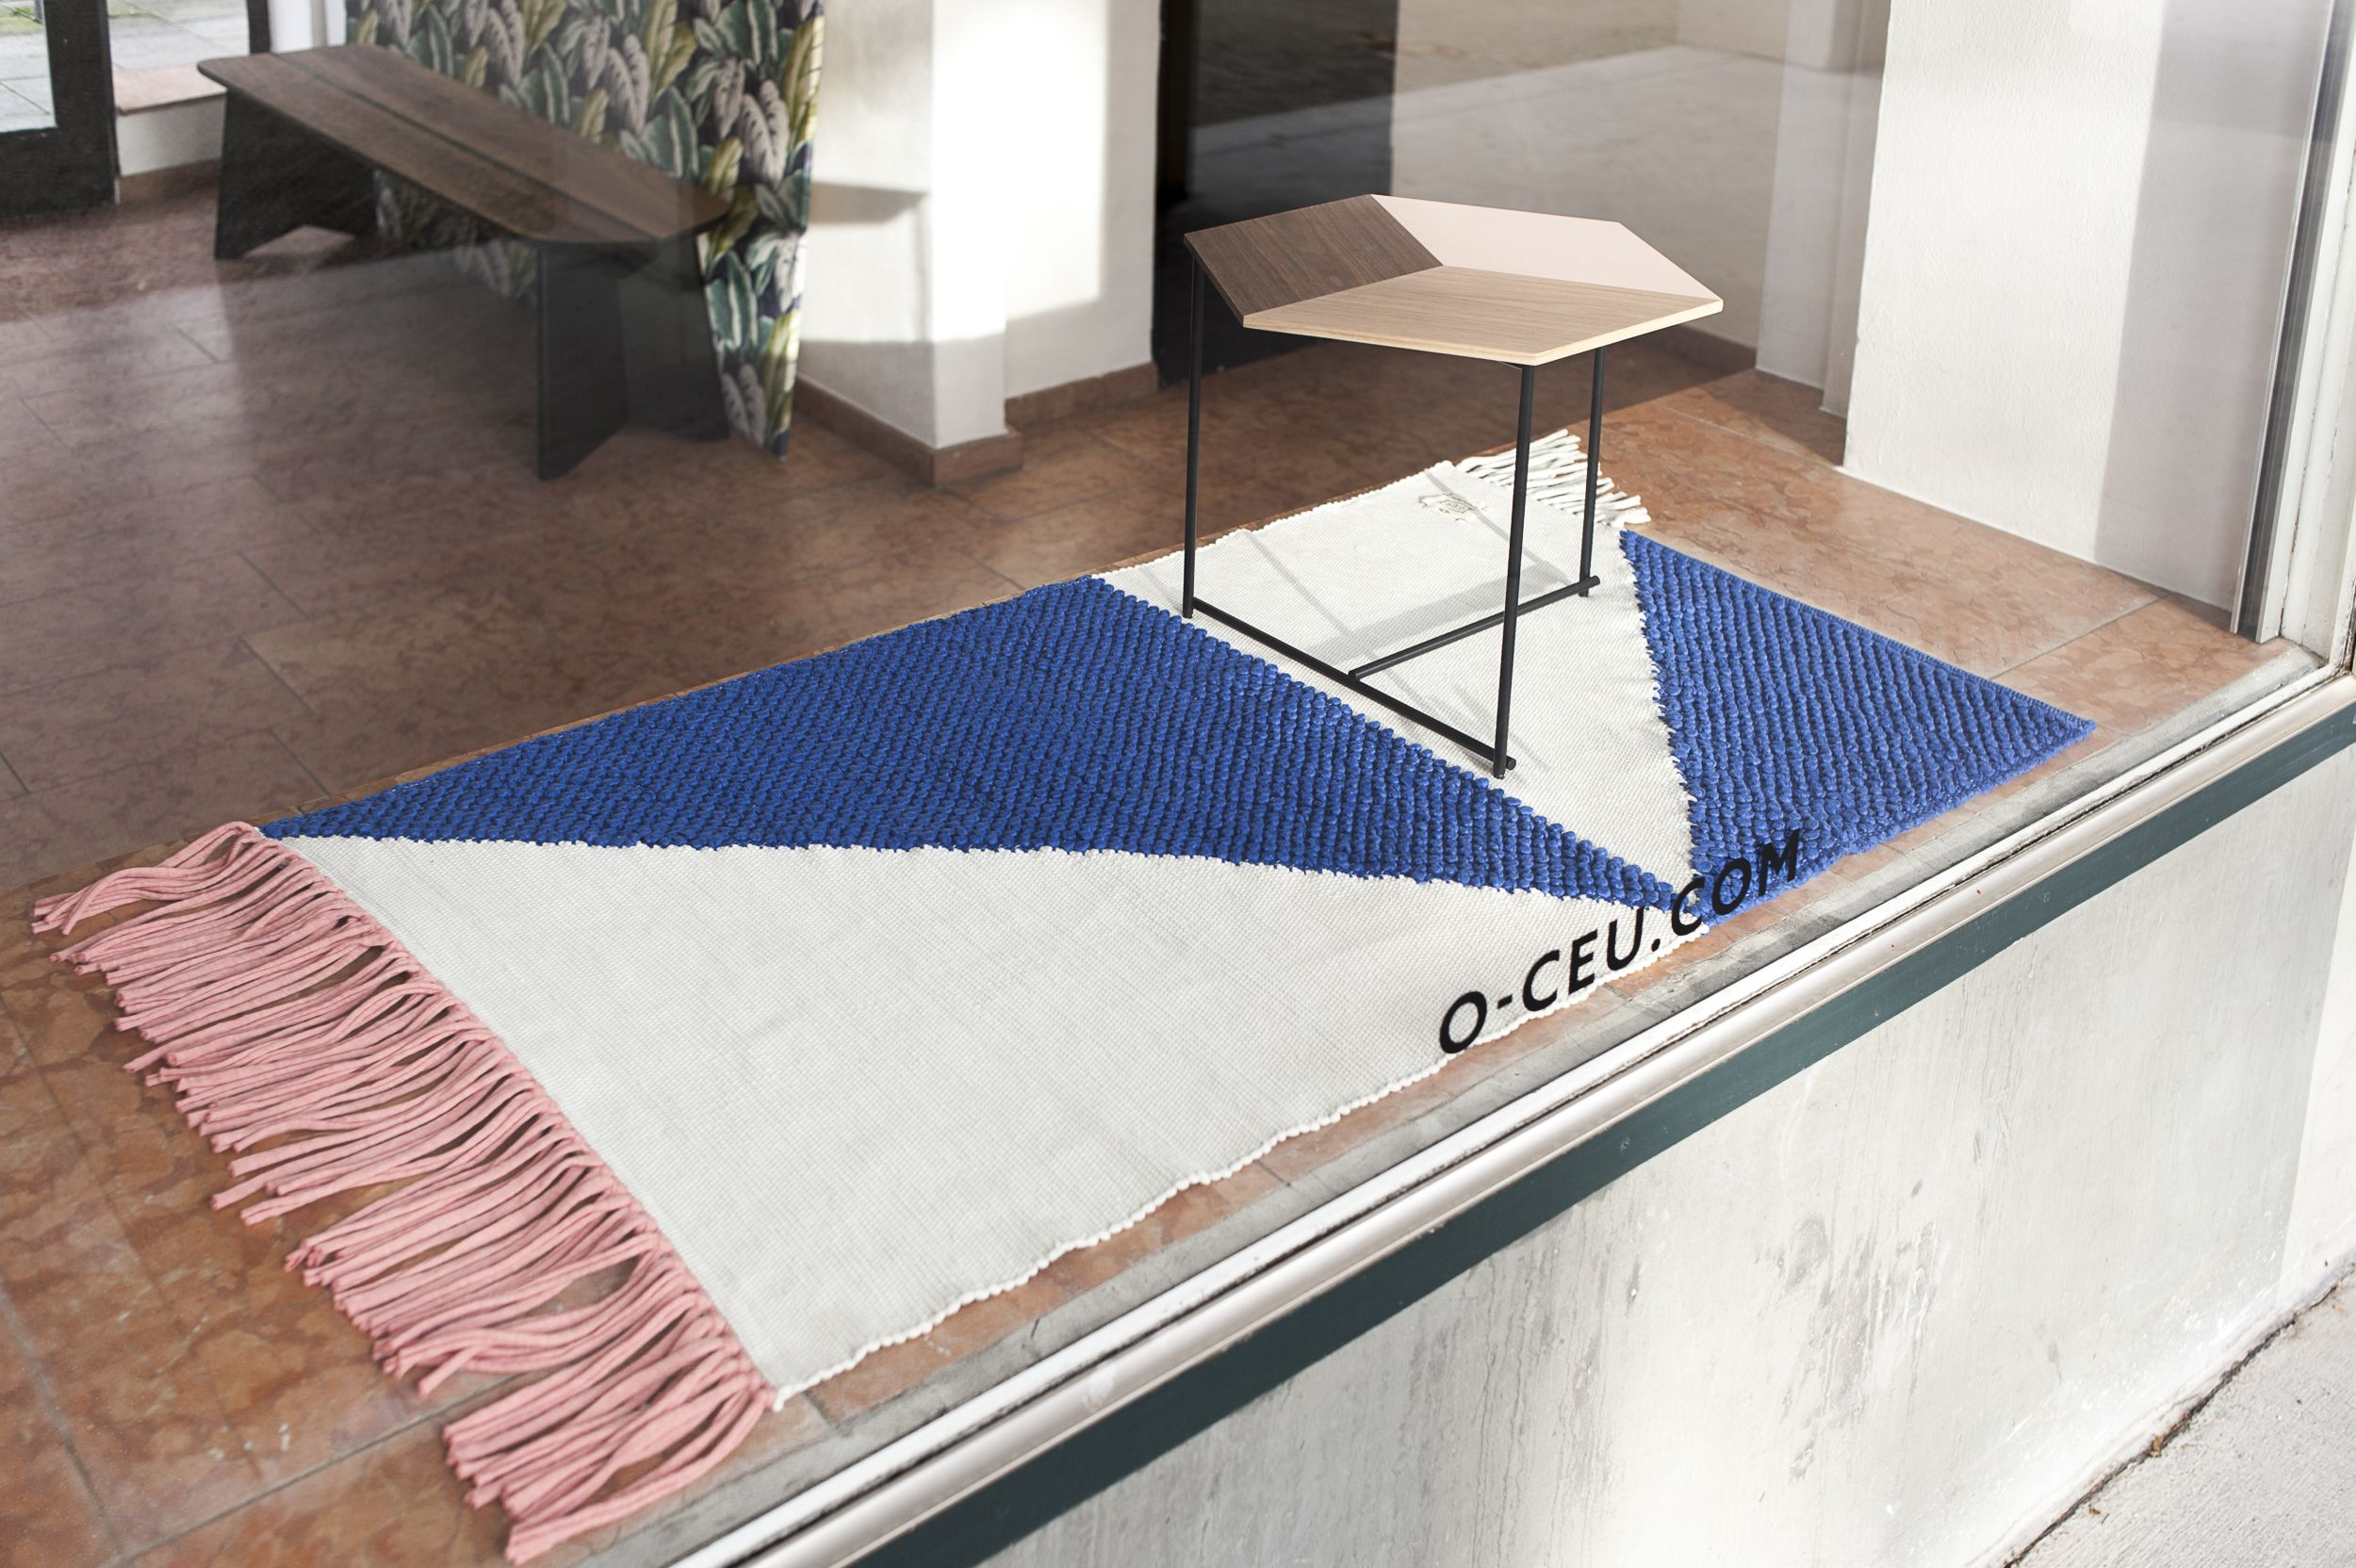 RUG x GUR  new carpet in cooperation with RUGBYGUR for O CÉU